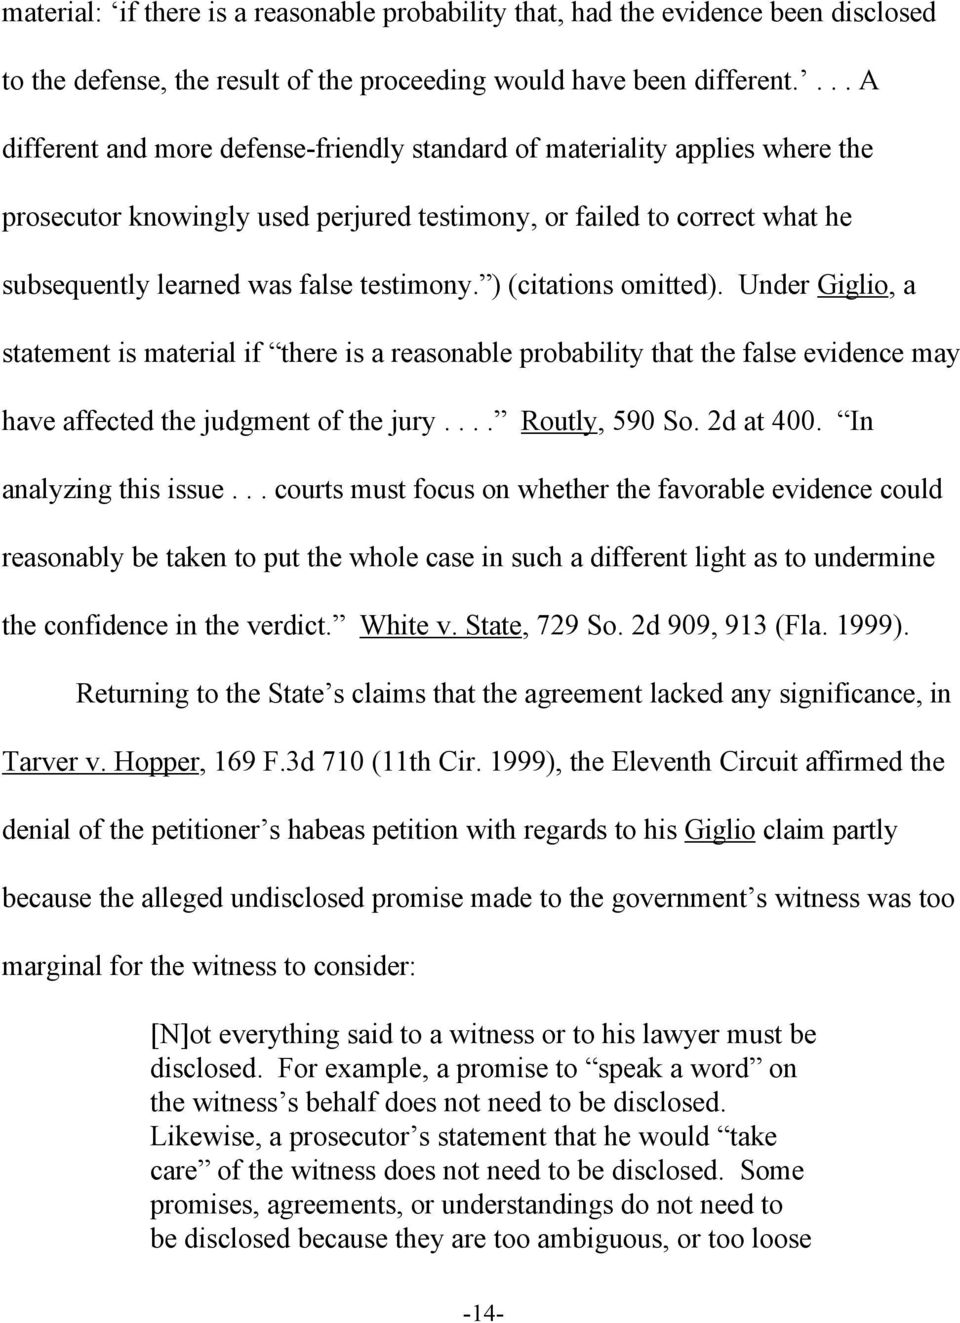 ) (citations omitted). Under Giglio, a statement is material if there is a reasonable probability that the false evidence may have affected the judgment of the jury.... Routly, 590 So. 2d at 400.